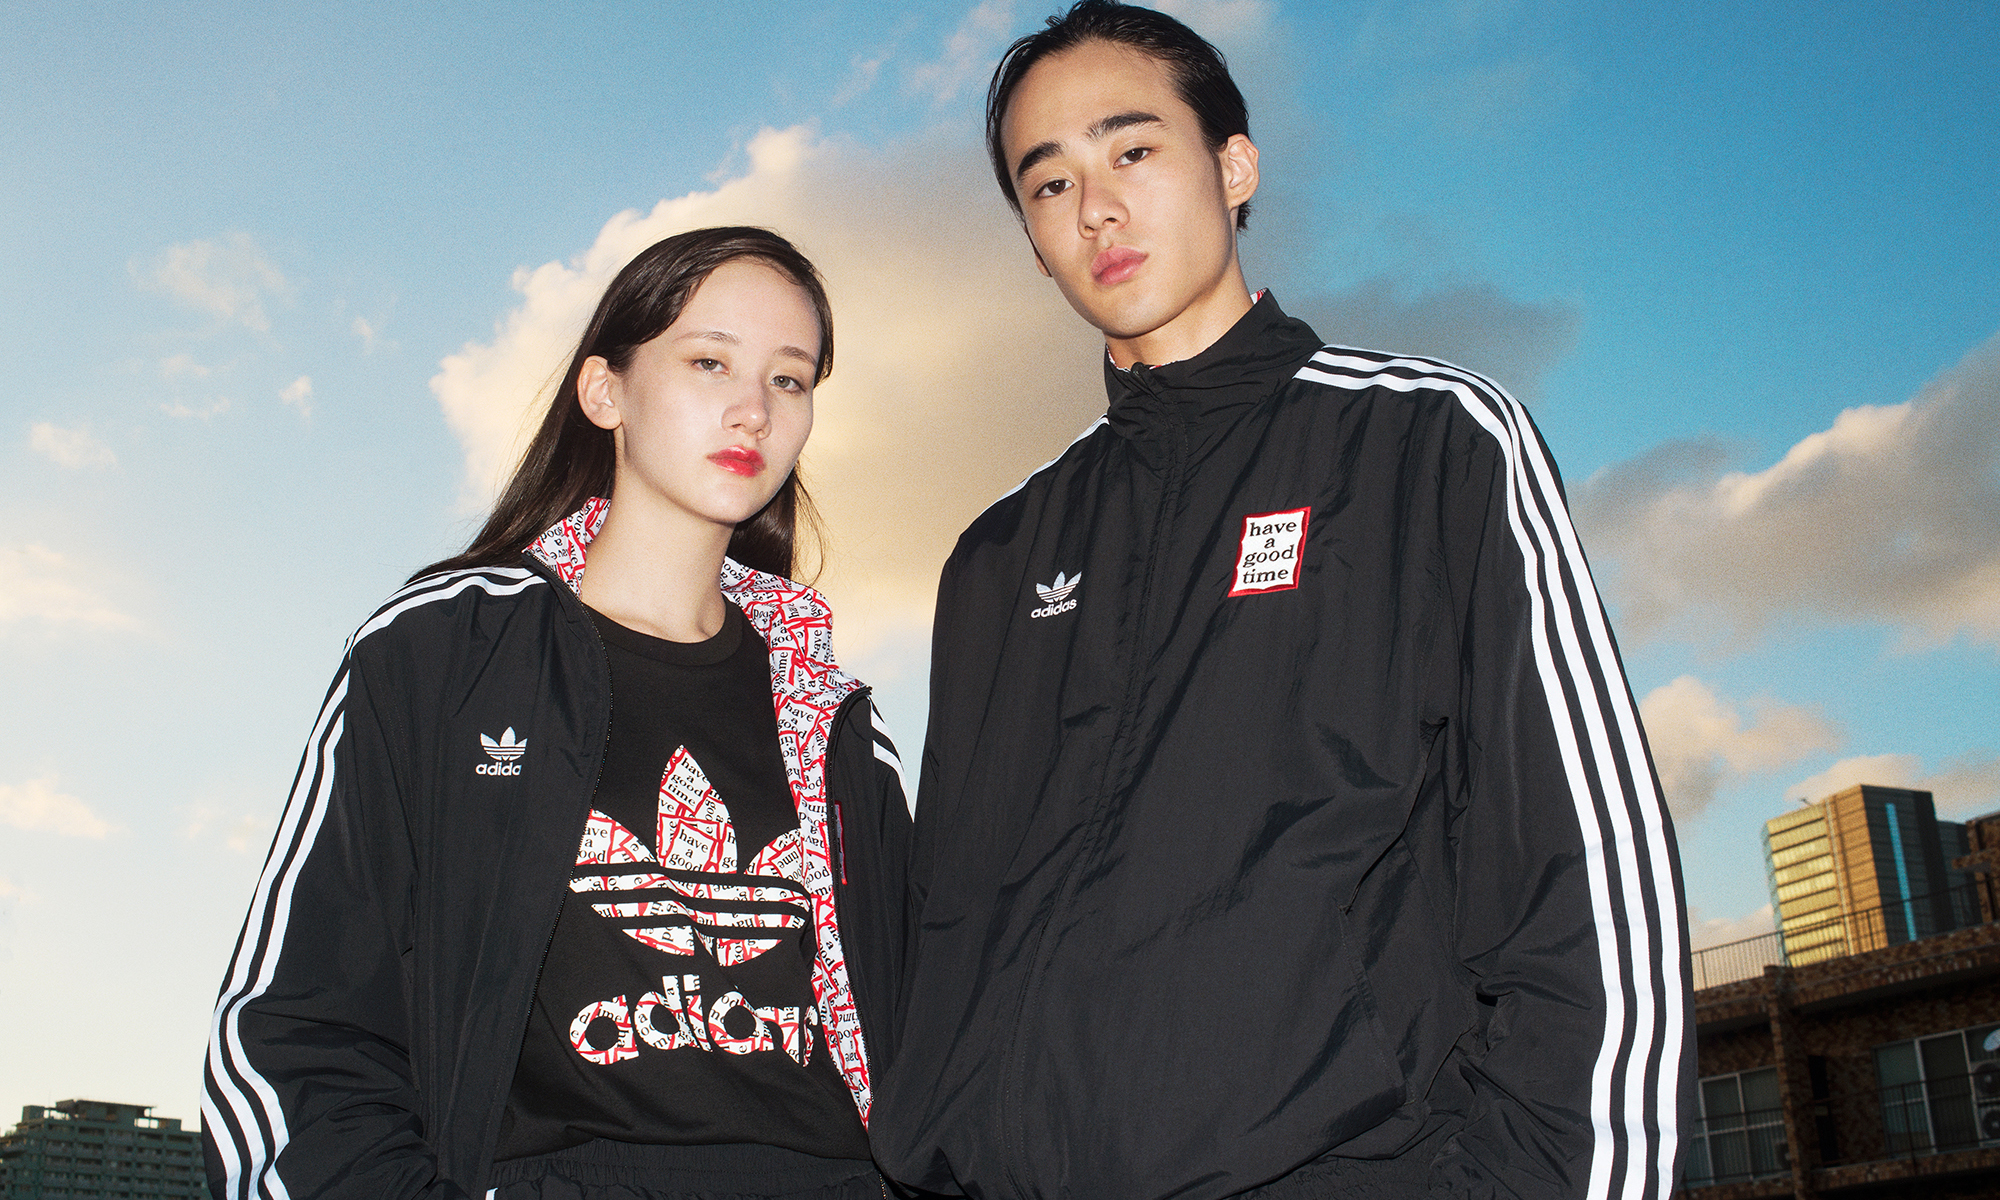 adidas Originals by HAVE A GOOD TIME 联名系列正式发布